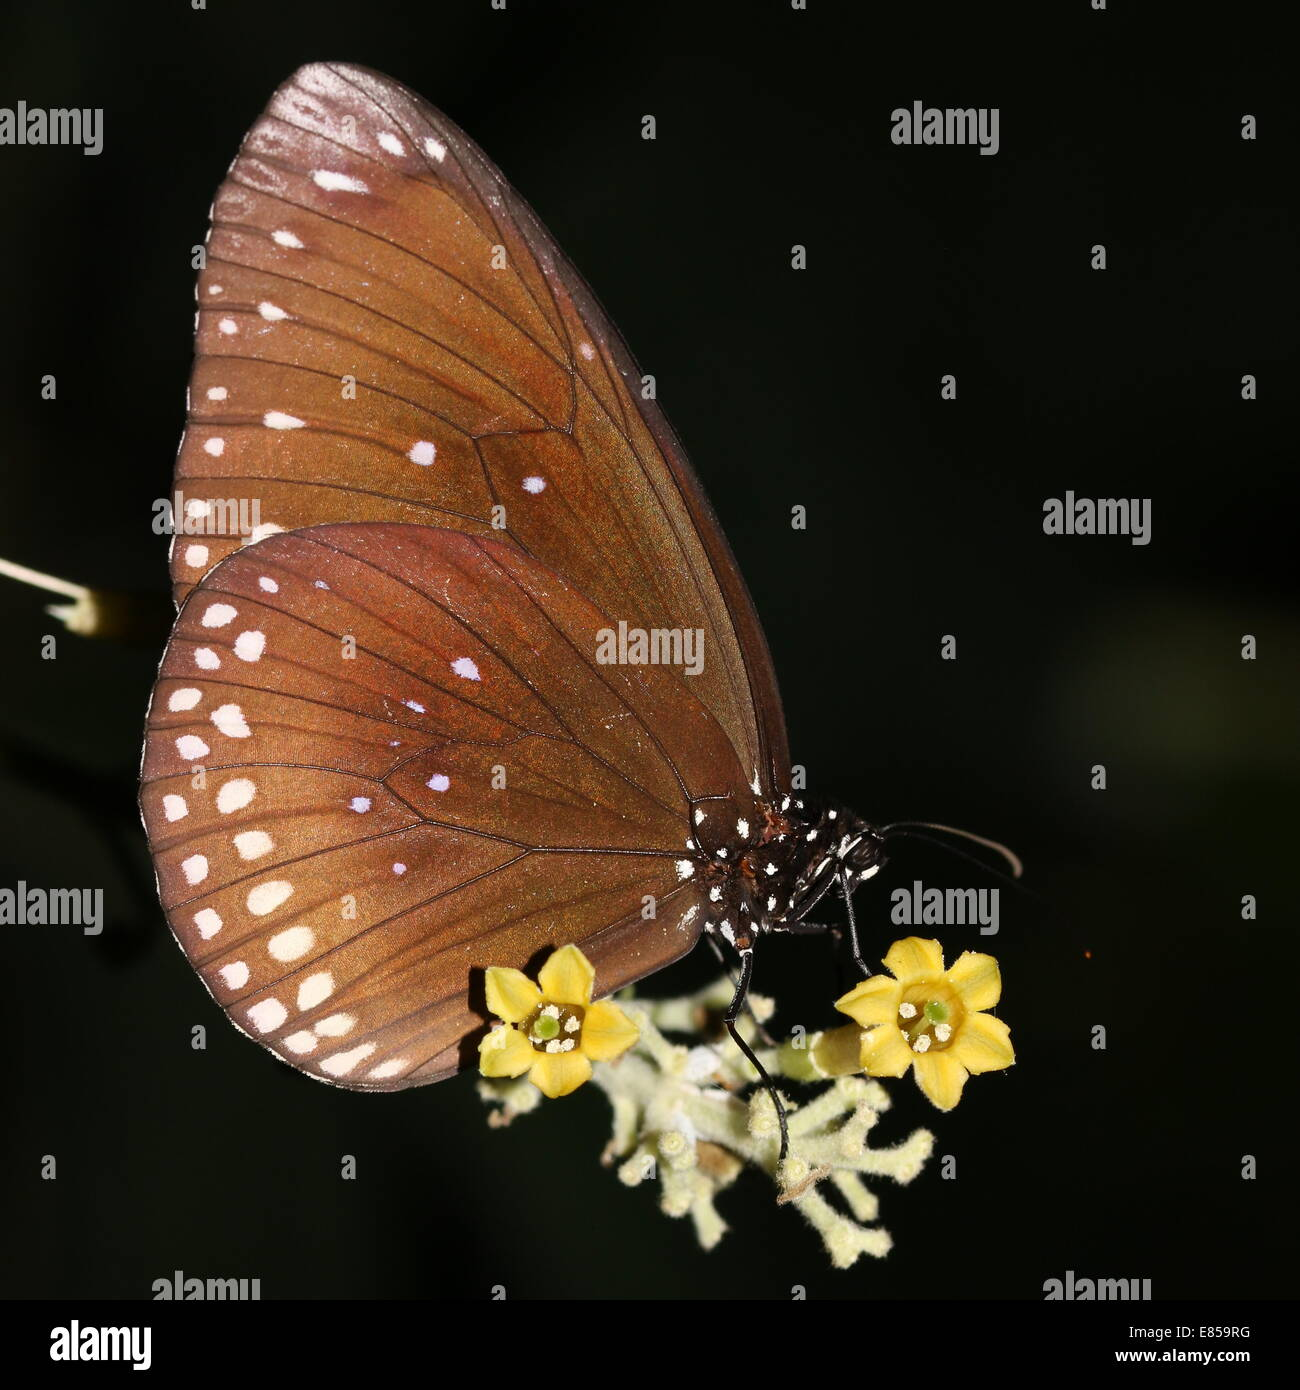 Common Crow butterfly a.k.a. Common Indian or Australian Crow (Euploea core) foraging on a  flower - Stock Image